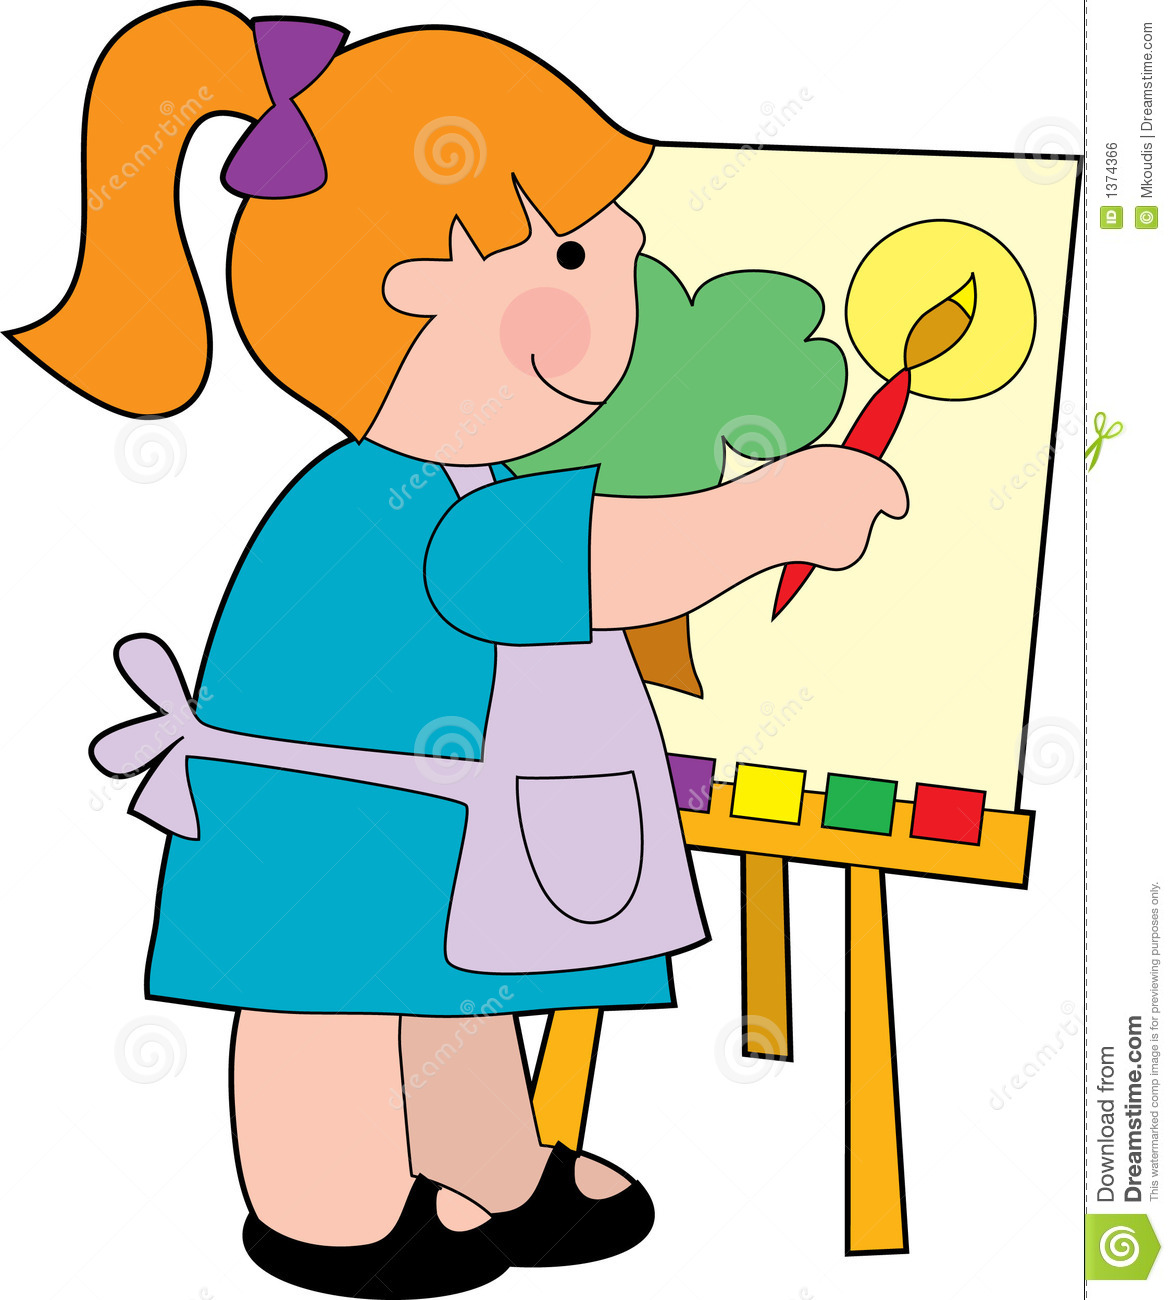 Painting images clip art.